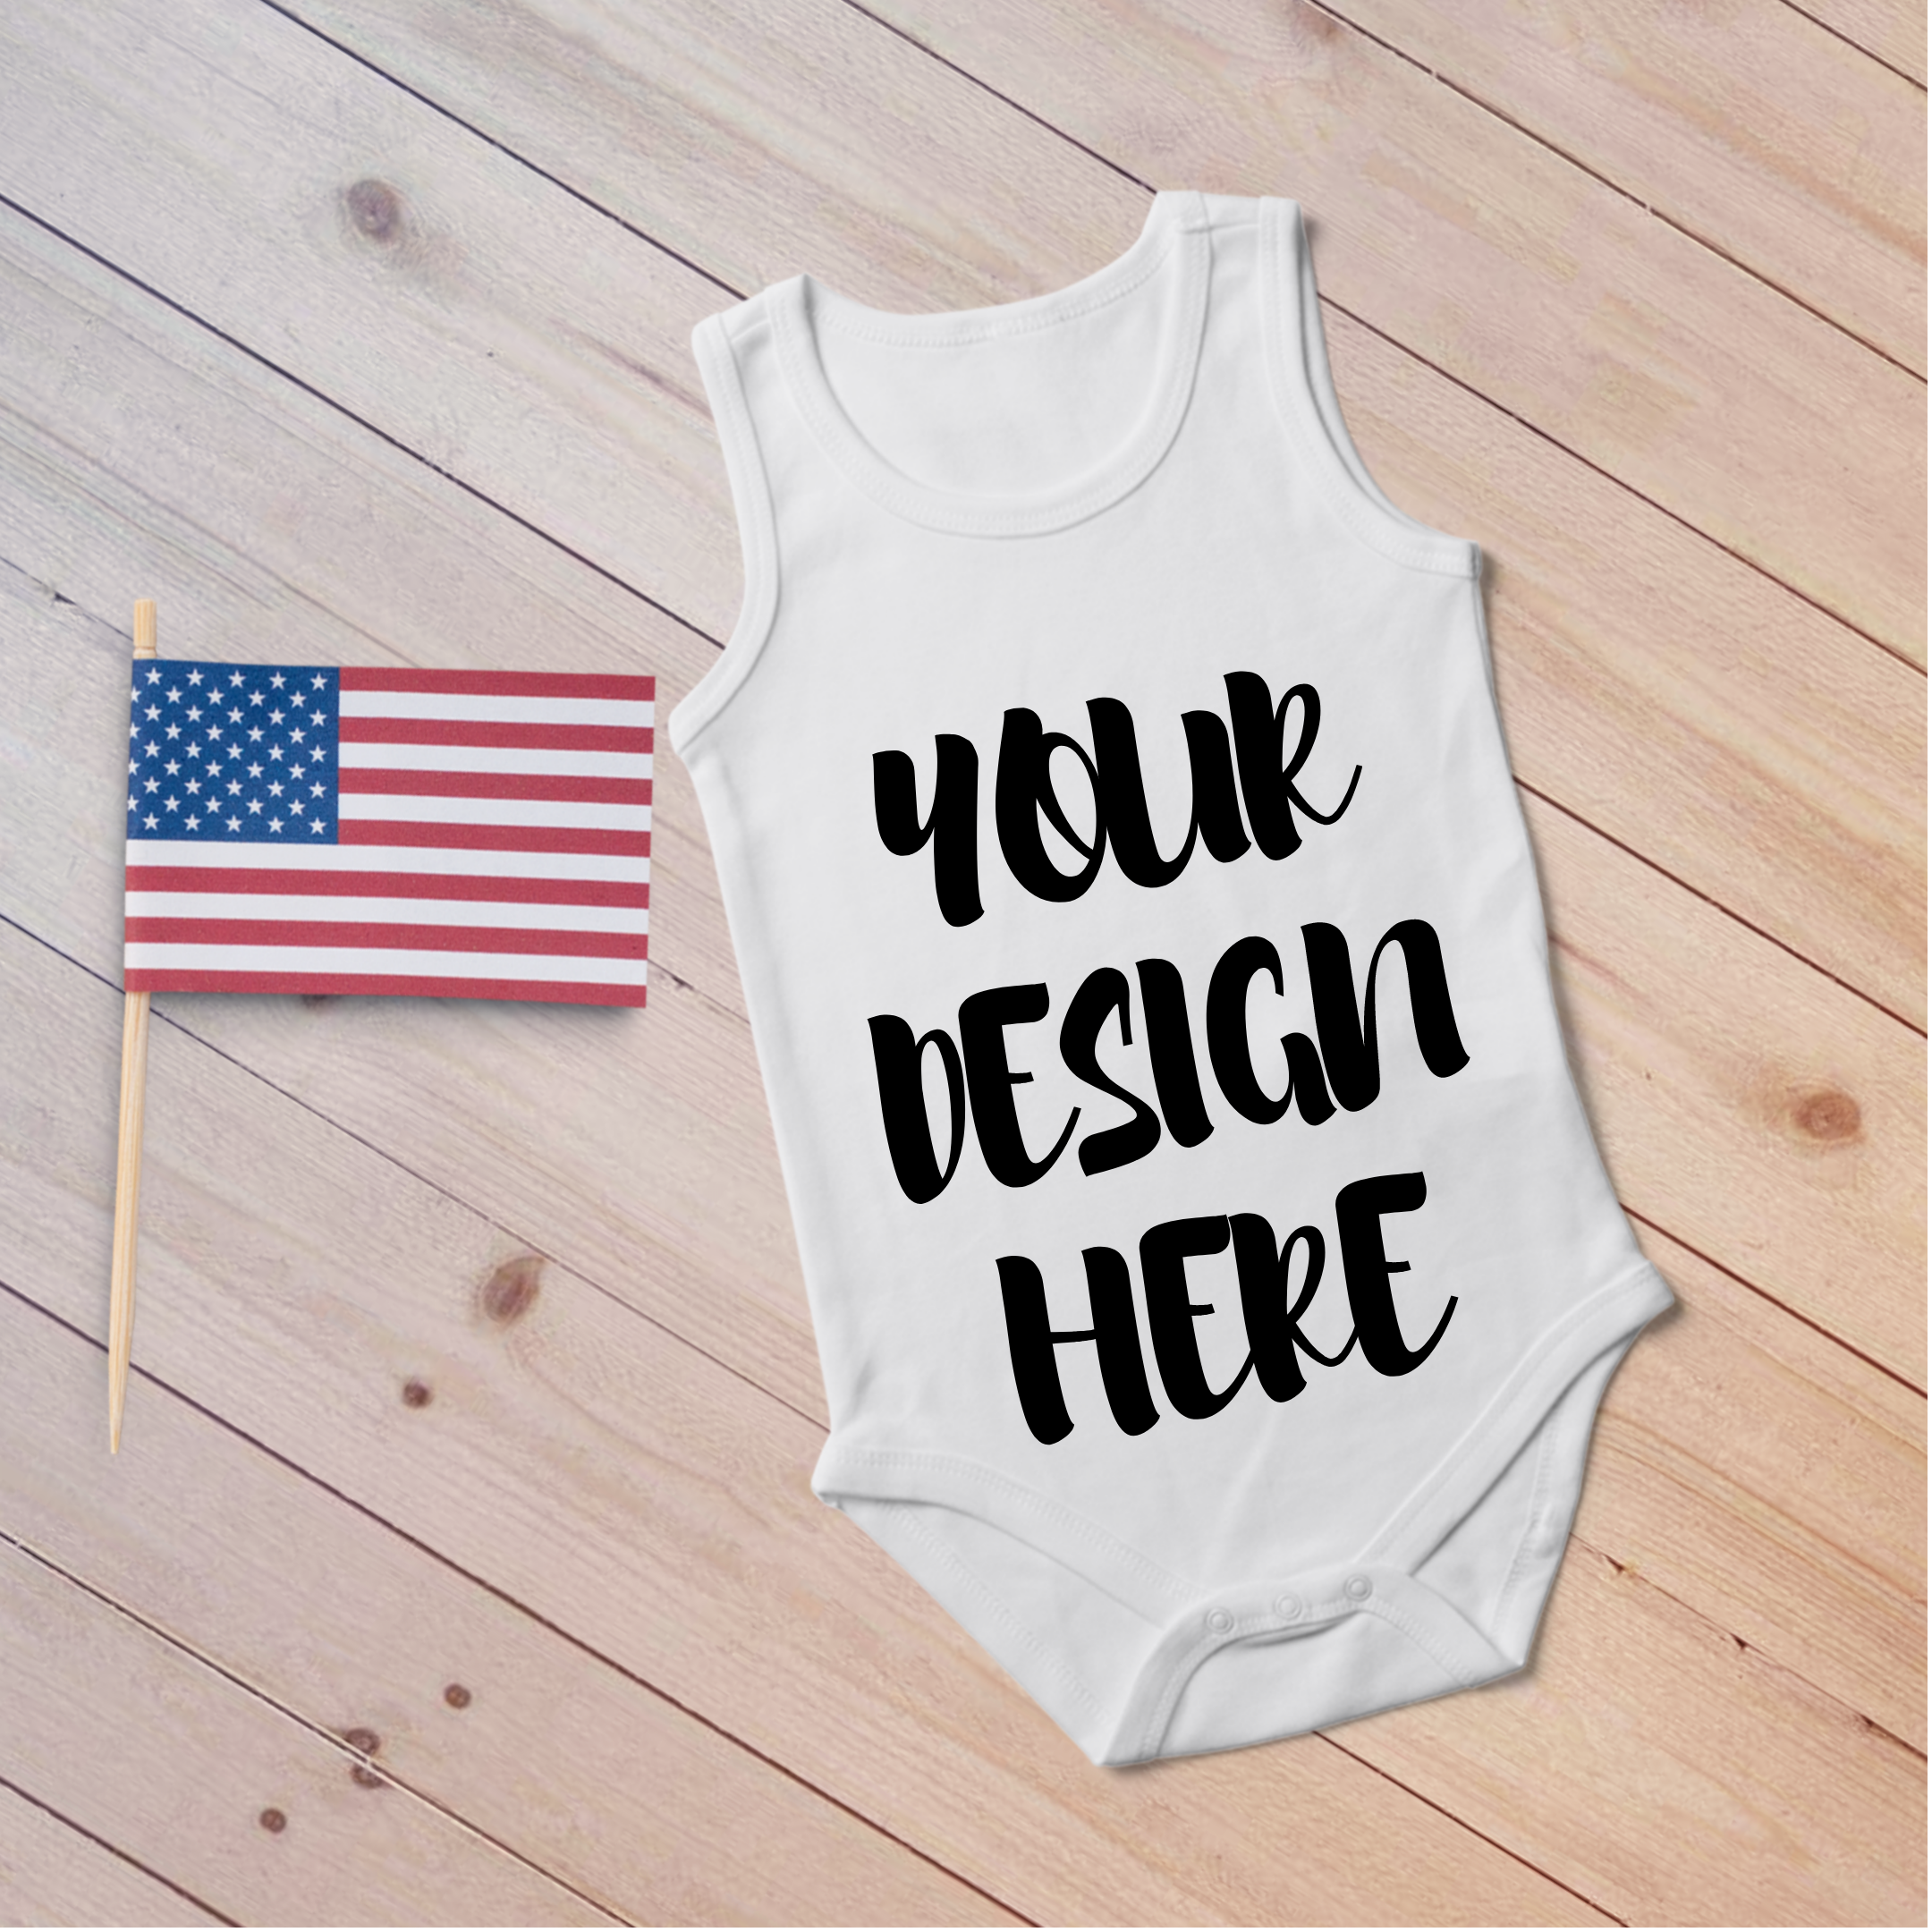 4th July Singlet Baby Bodysuit Mockups - 7 example image 8